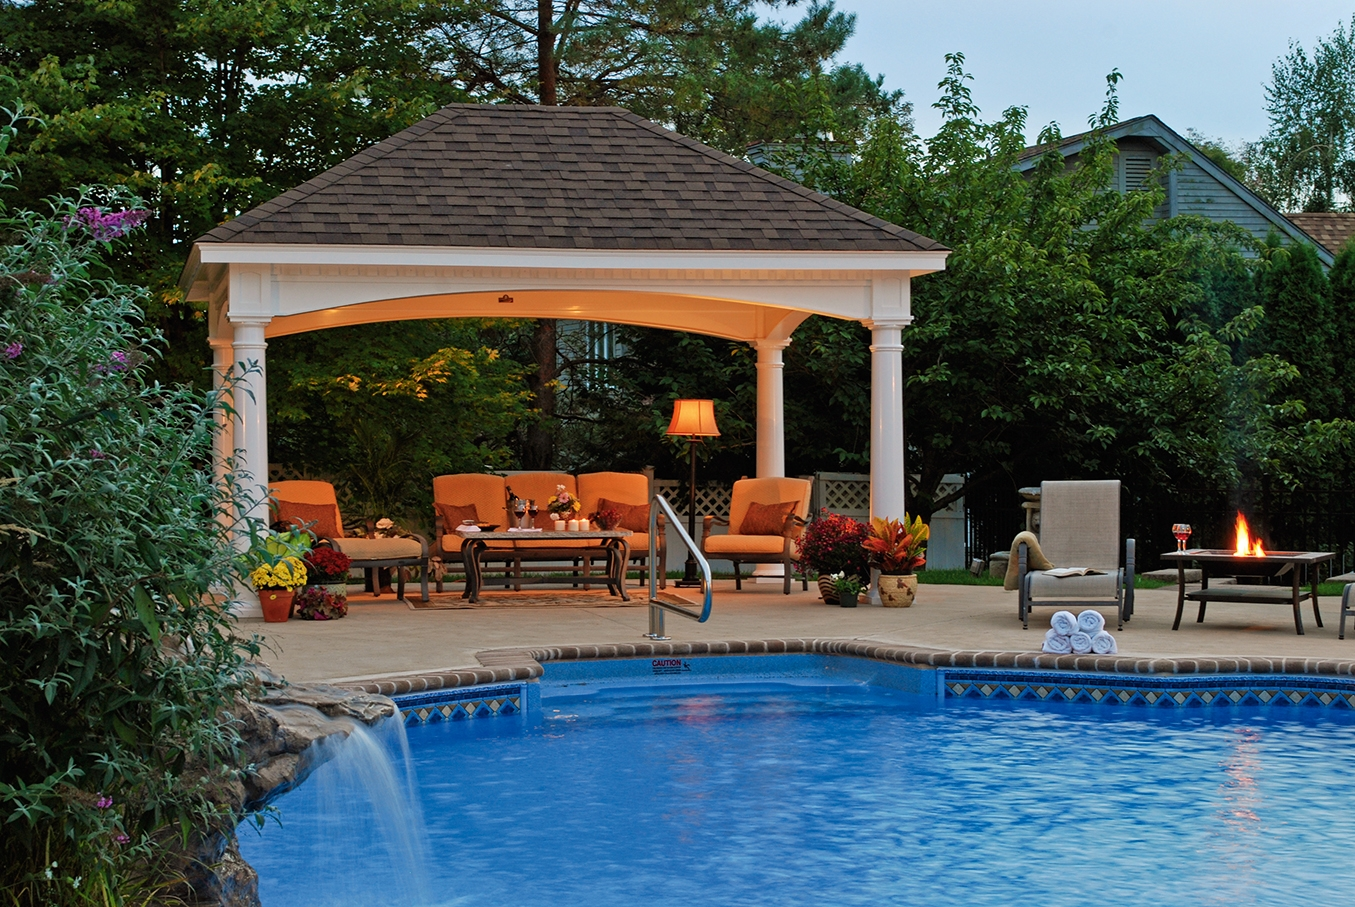 Outdoor pavilion plans that offer a pleasant relaxing time for Pool design by poolside